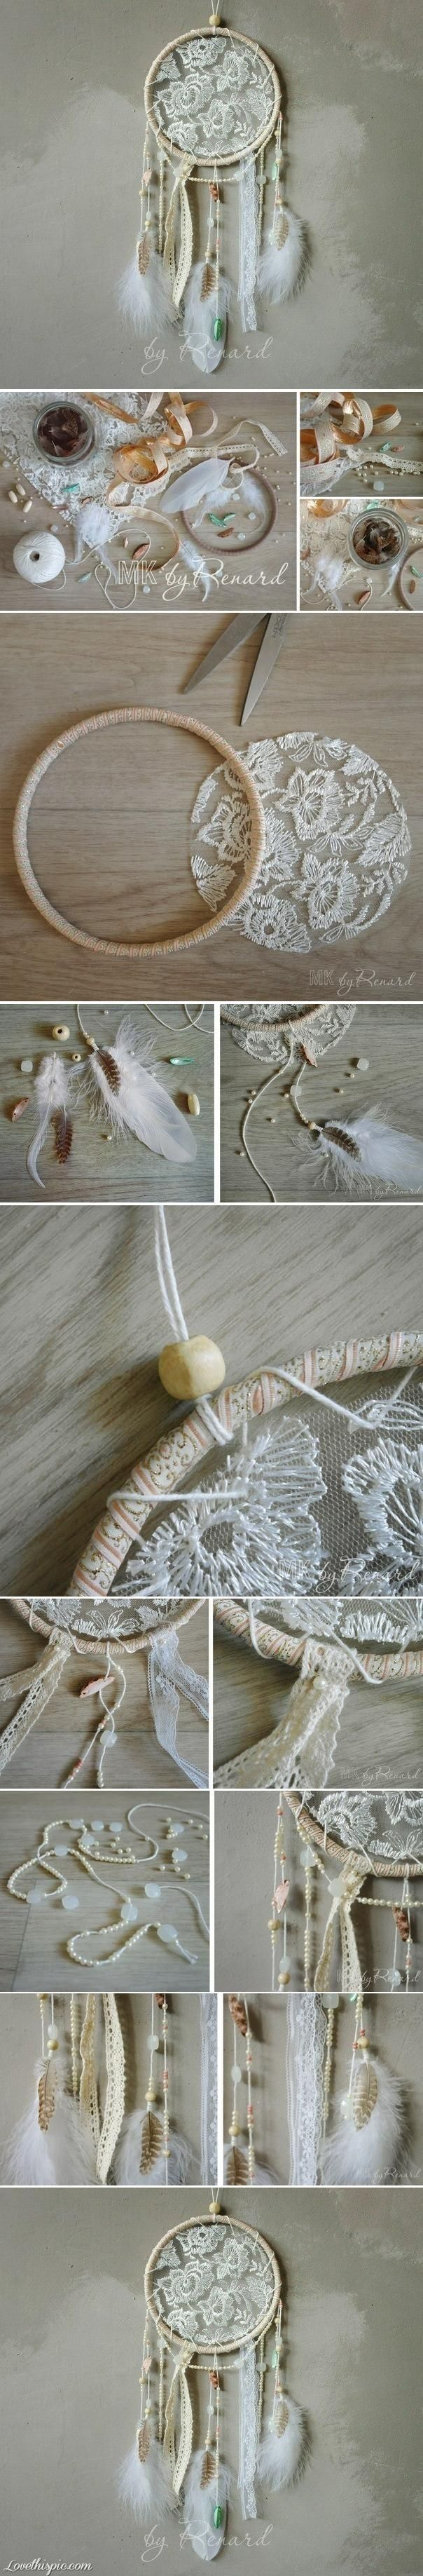 302 best images about diy on pinterest manualidades 2015 diy dream catcher diy crafts easy crafts craft idea crafts ideas diy ideas diy crafts diy idea do it yourself diy projects diy craft handmade diy dream solutioingenieria Images